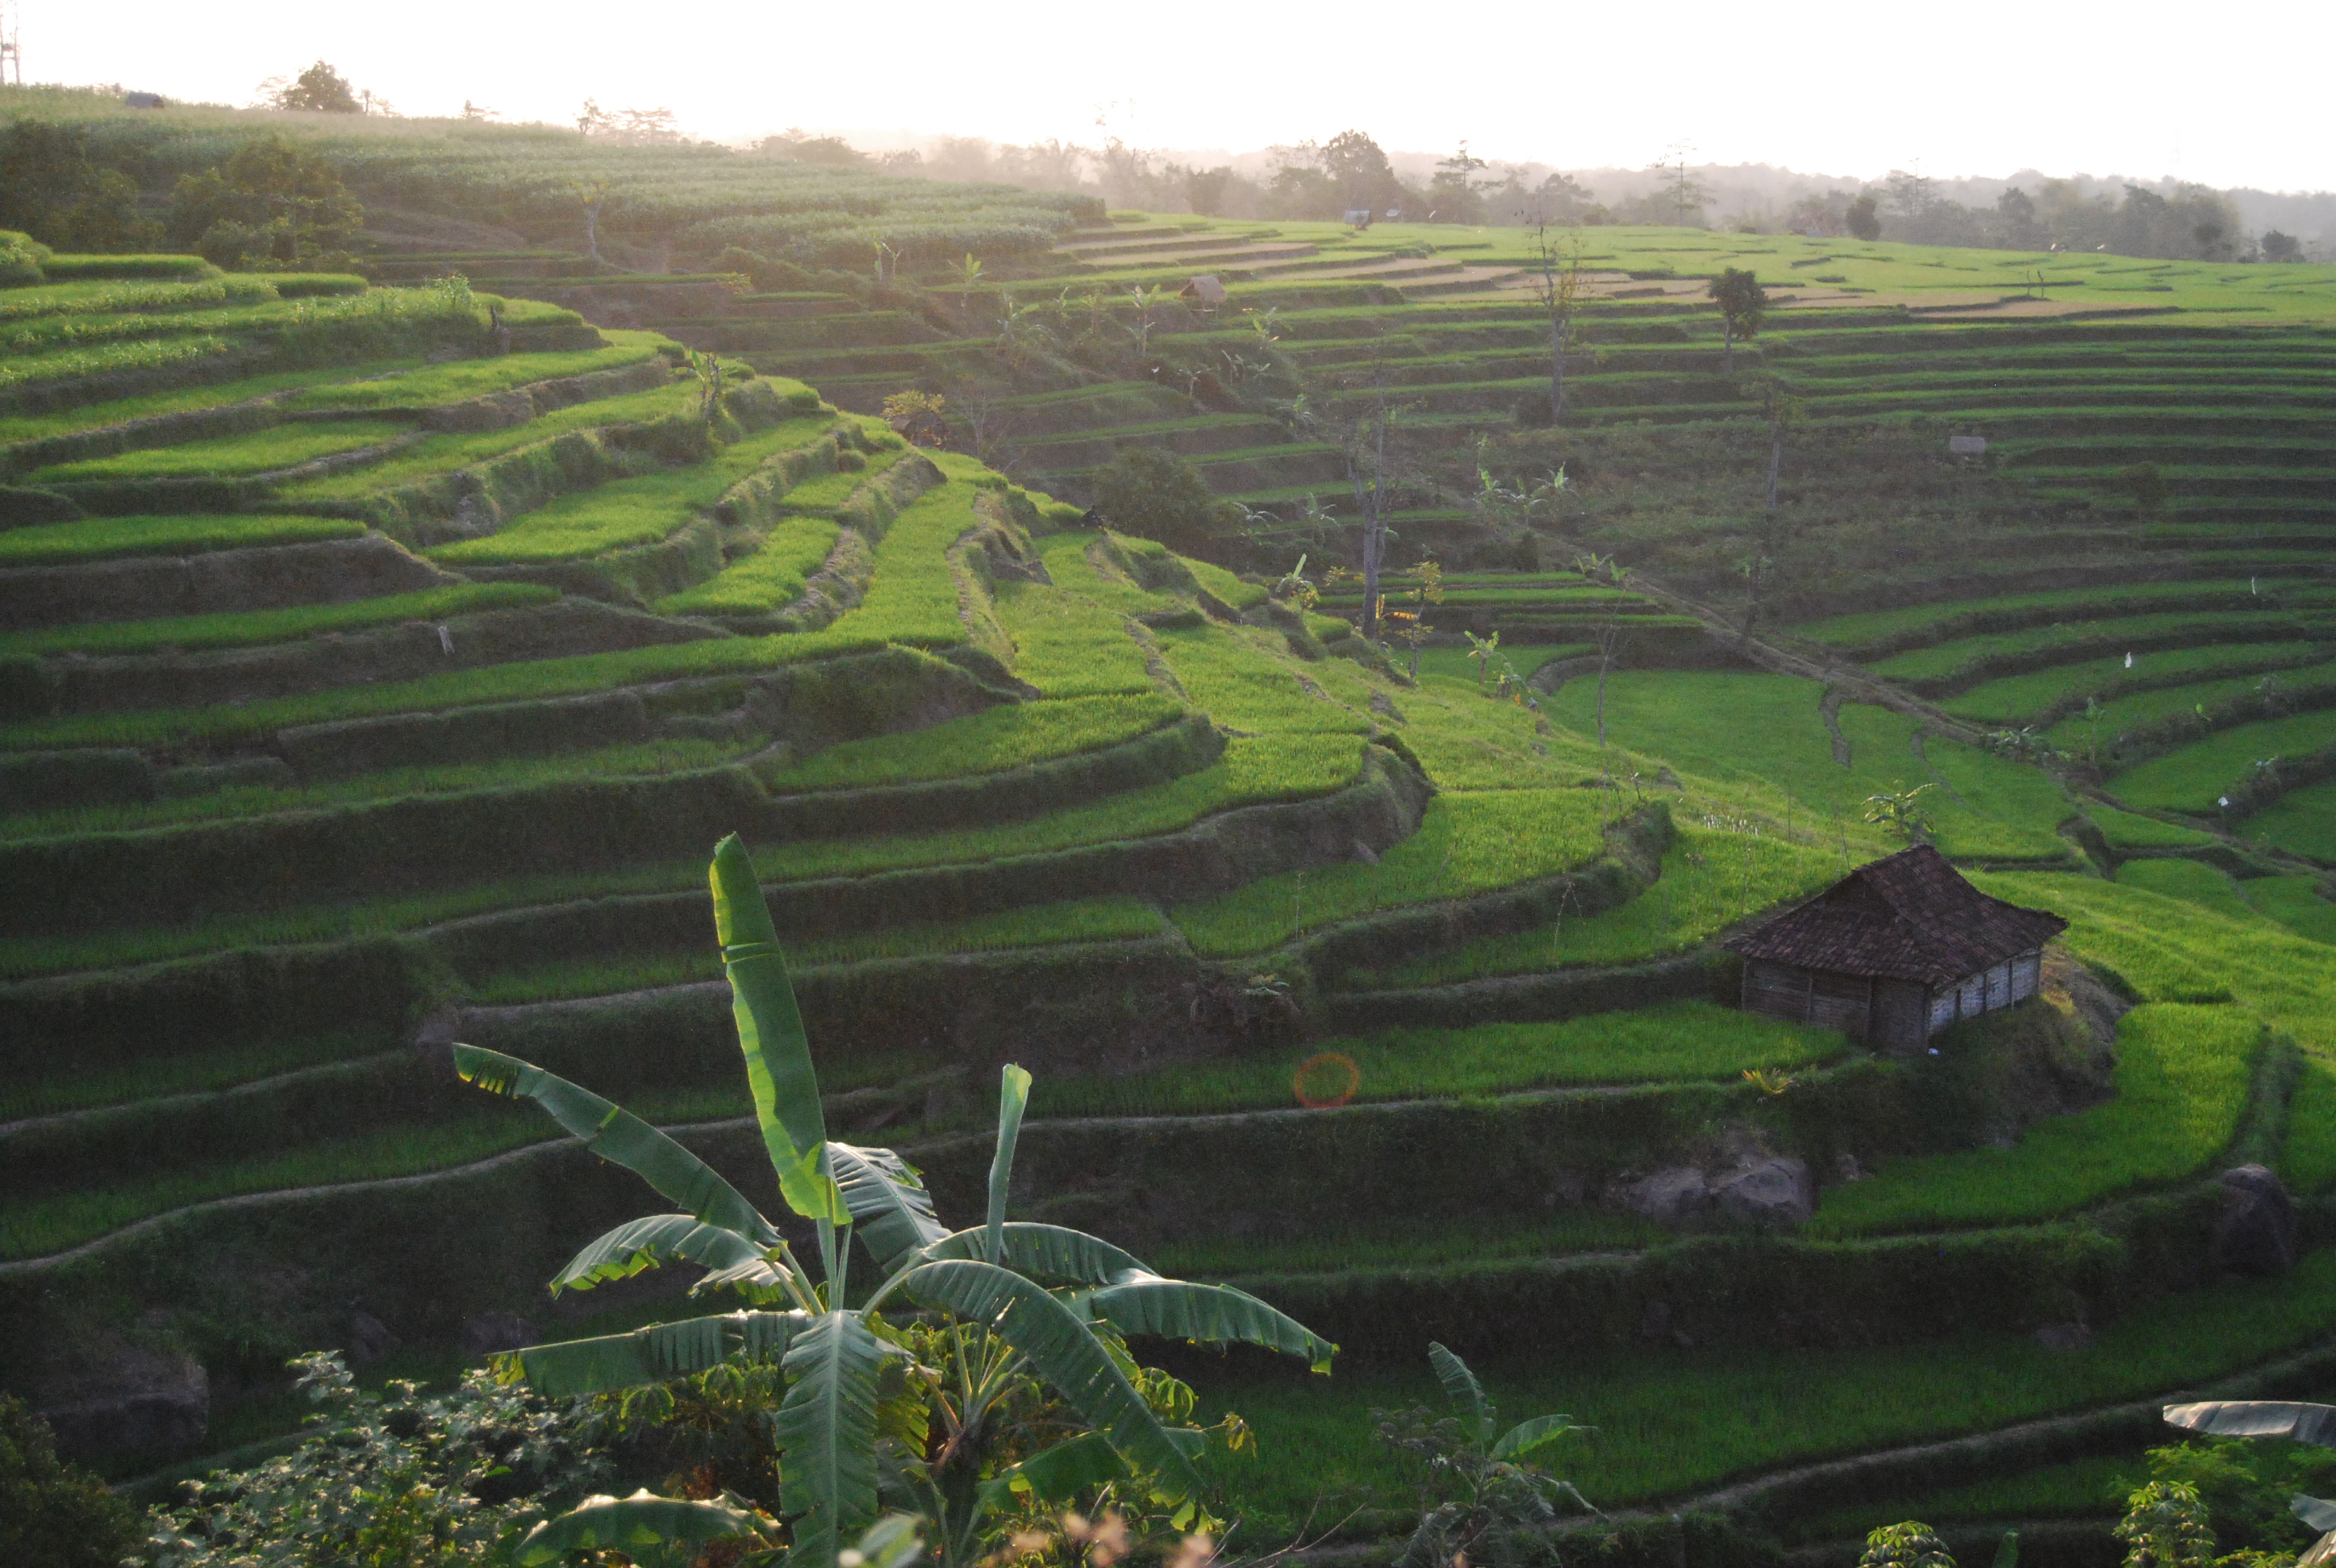 Tim Hannigan - The History Archipelago Travels in Search of Indonesia's Past 1